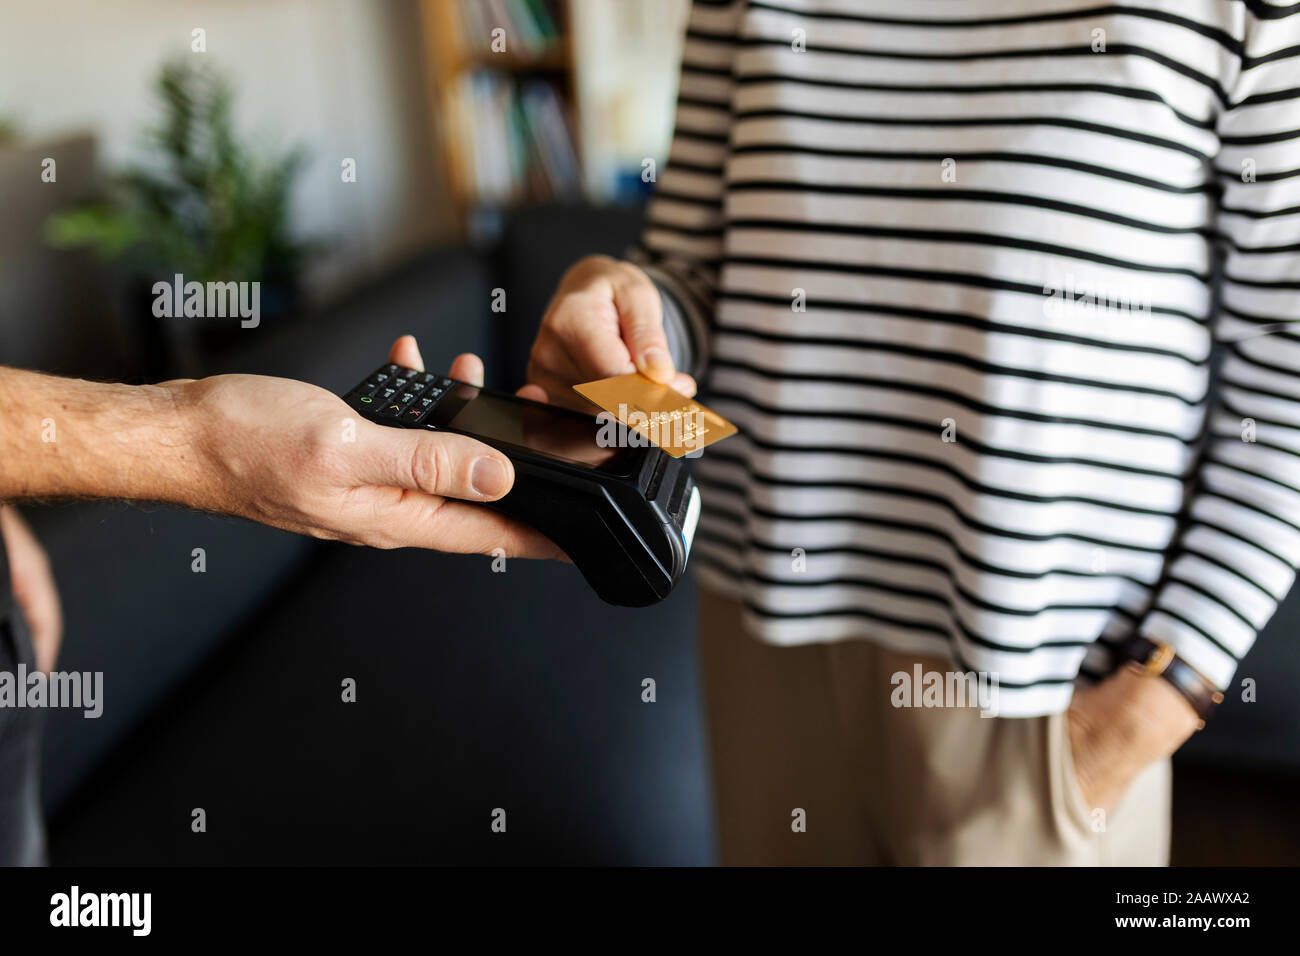 Close-up of woman paying with credit card at home Stock Photo